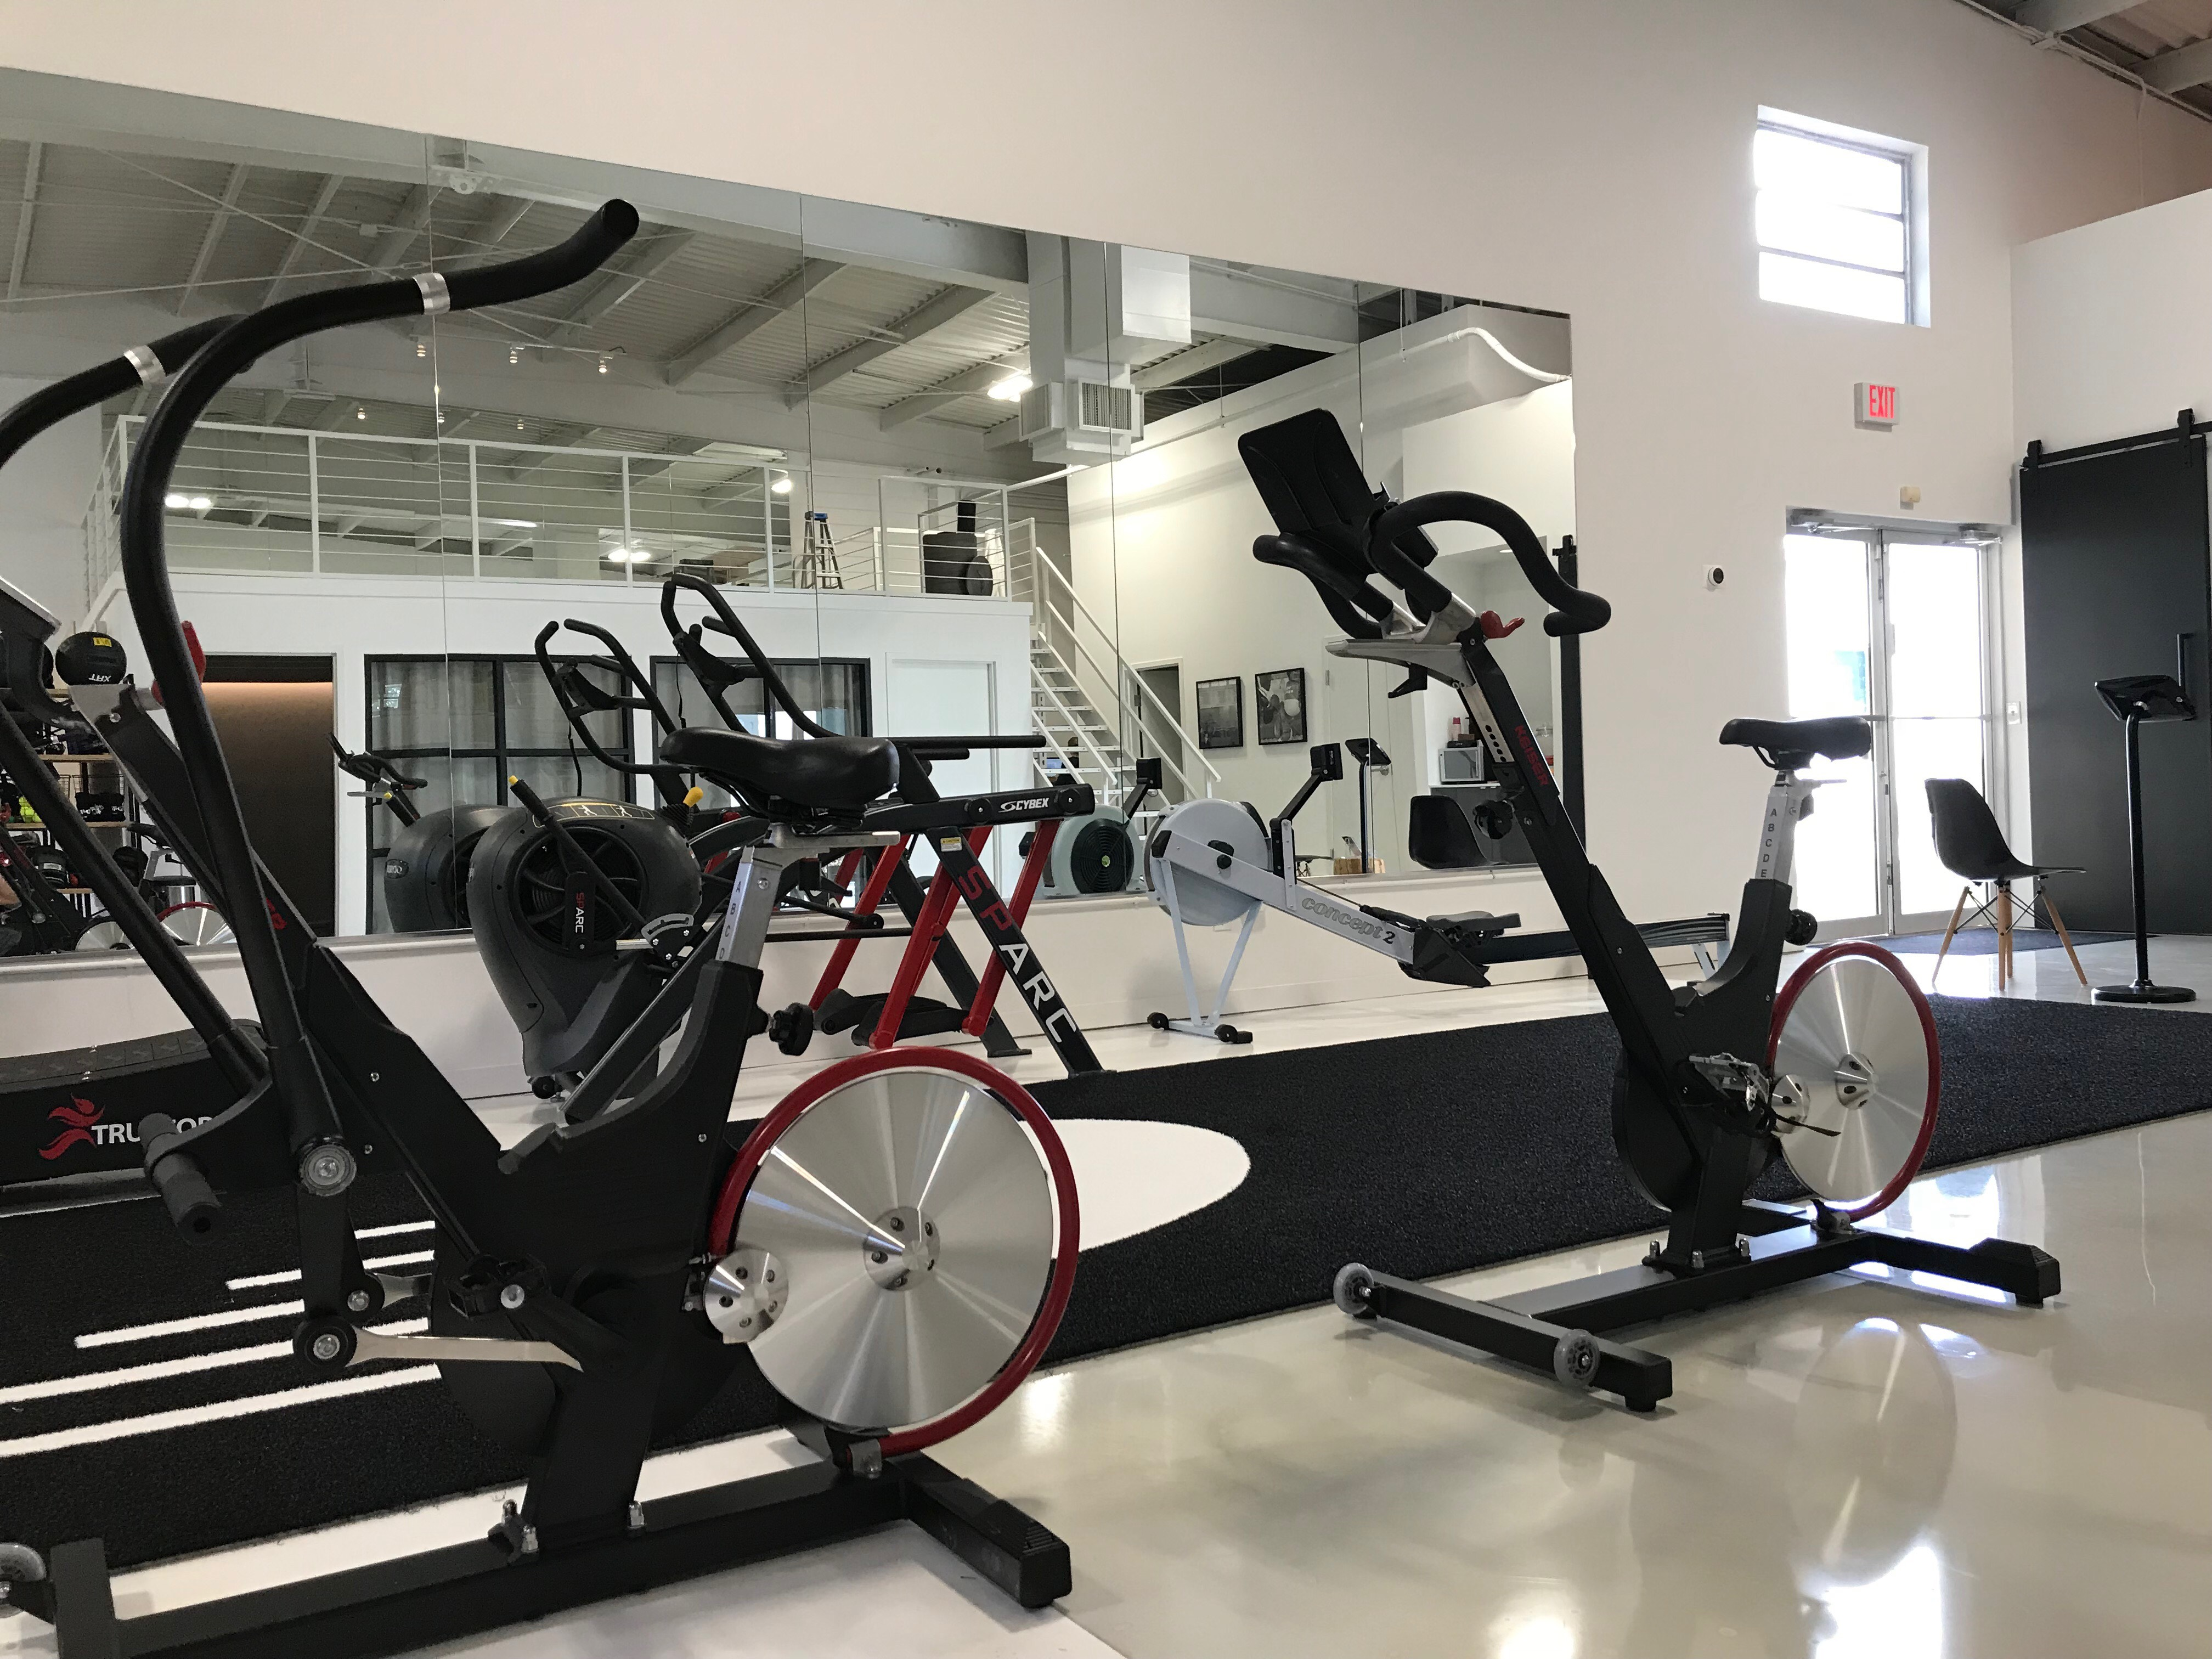 Exercise Equipment DrivenFit SWS South Tampa Gym